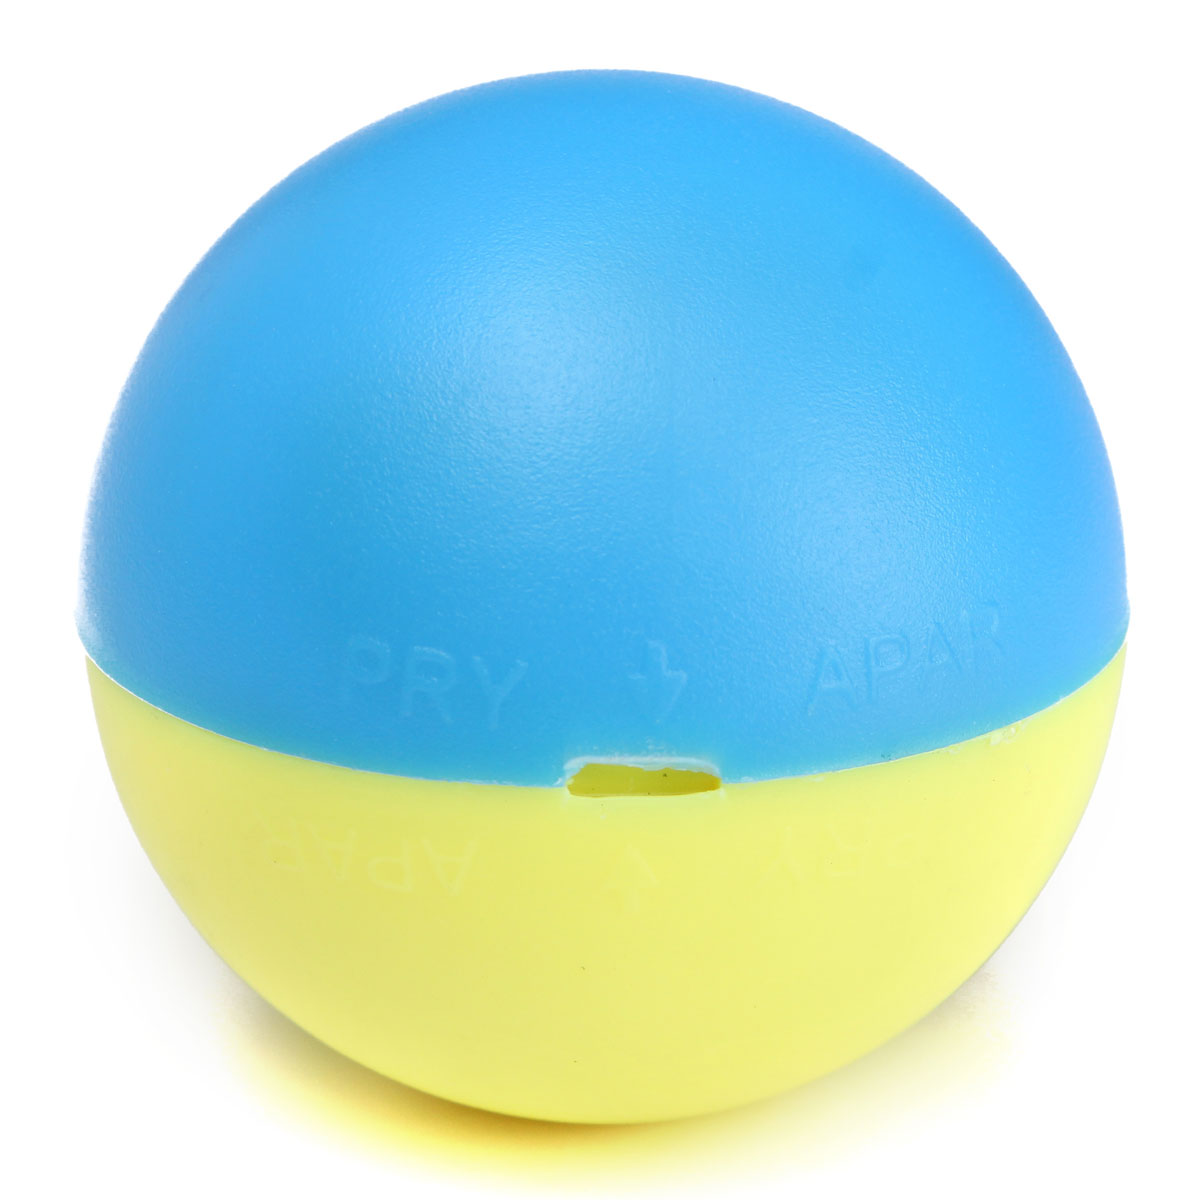 Round yellow cat toy with ball